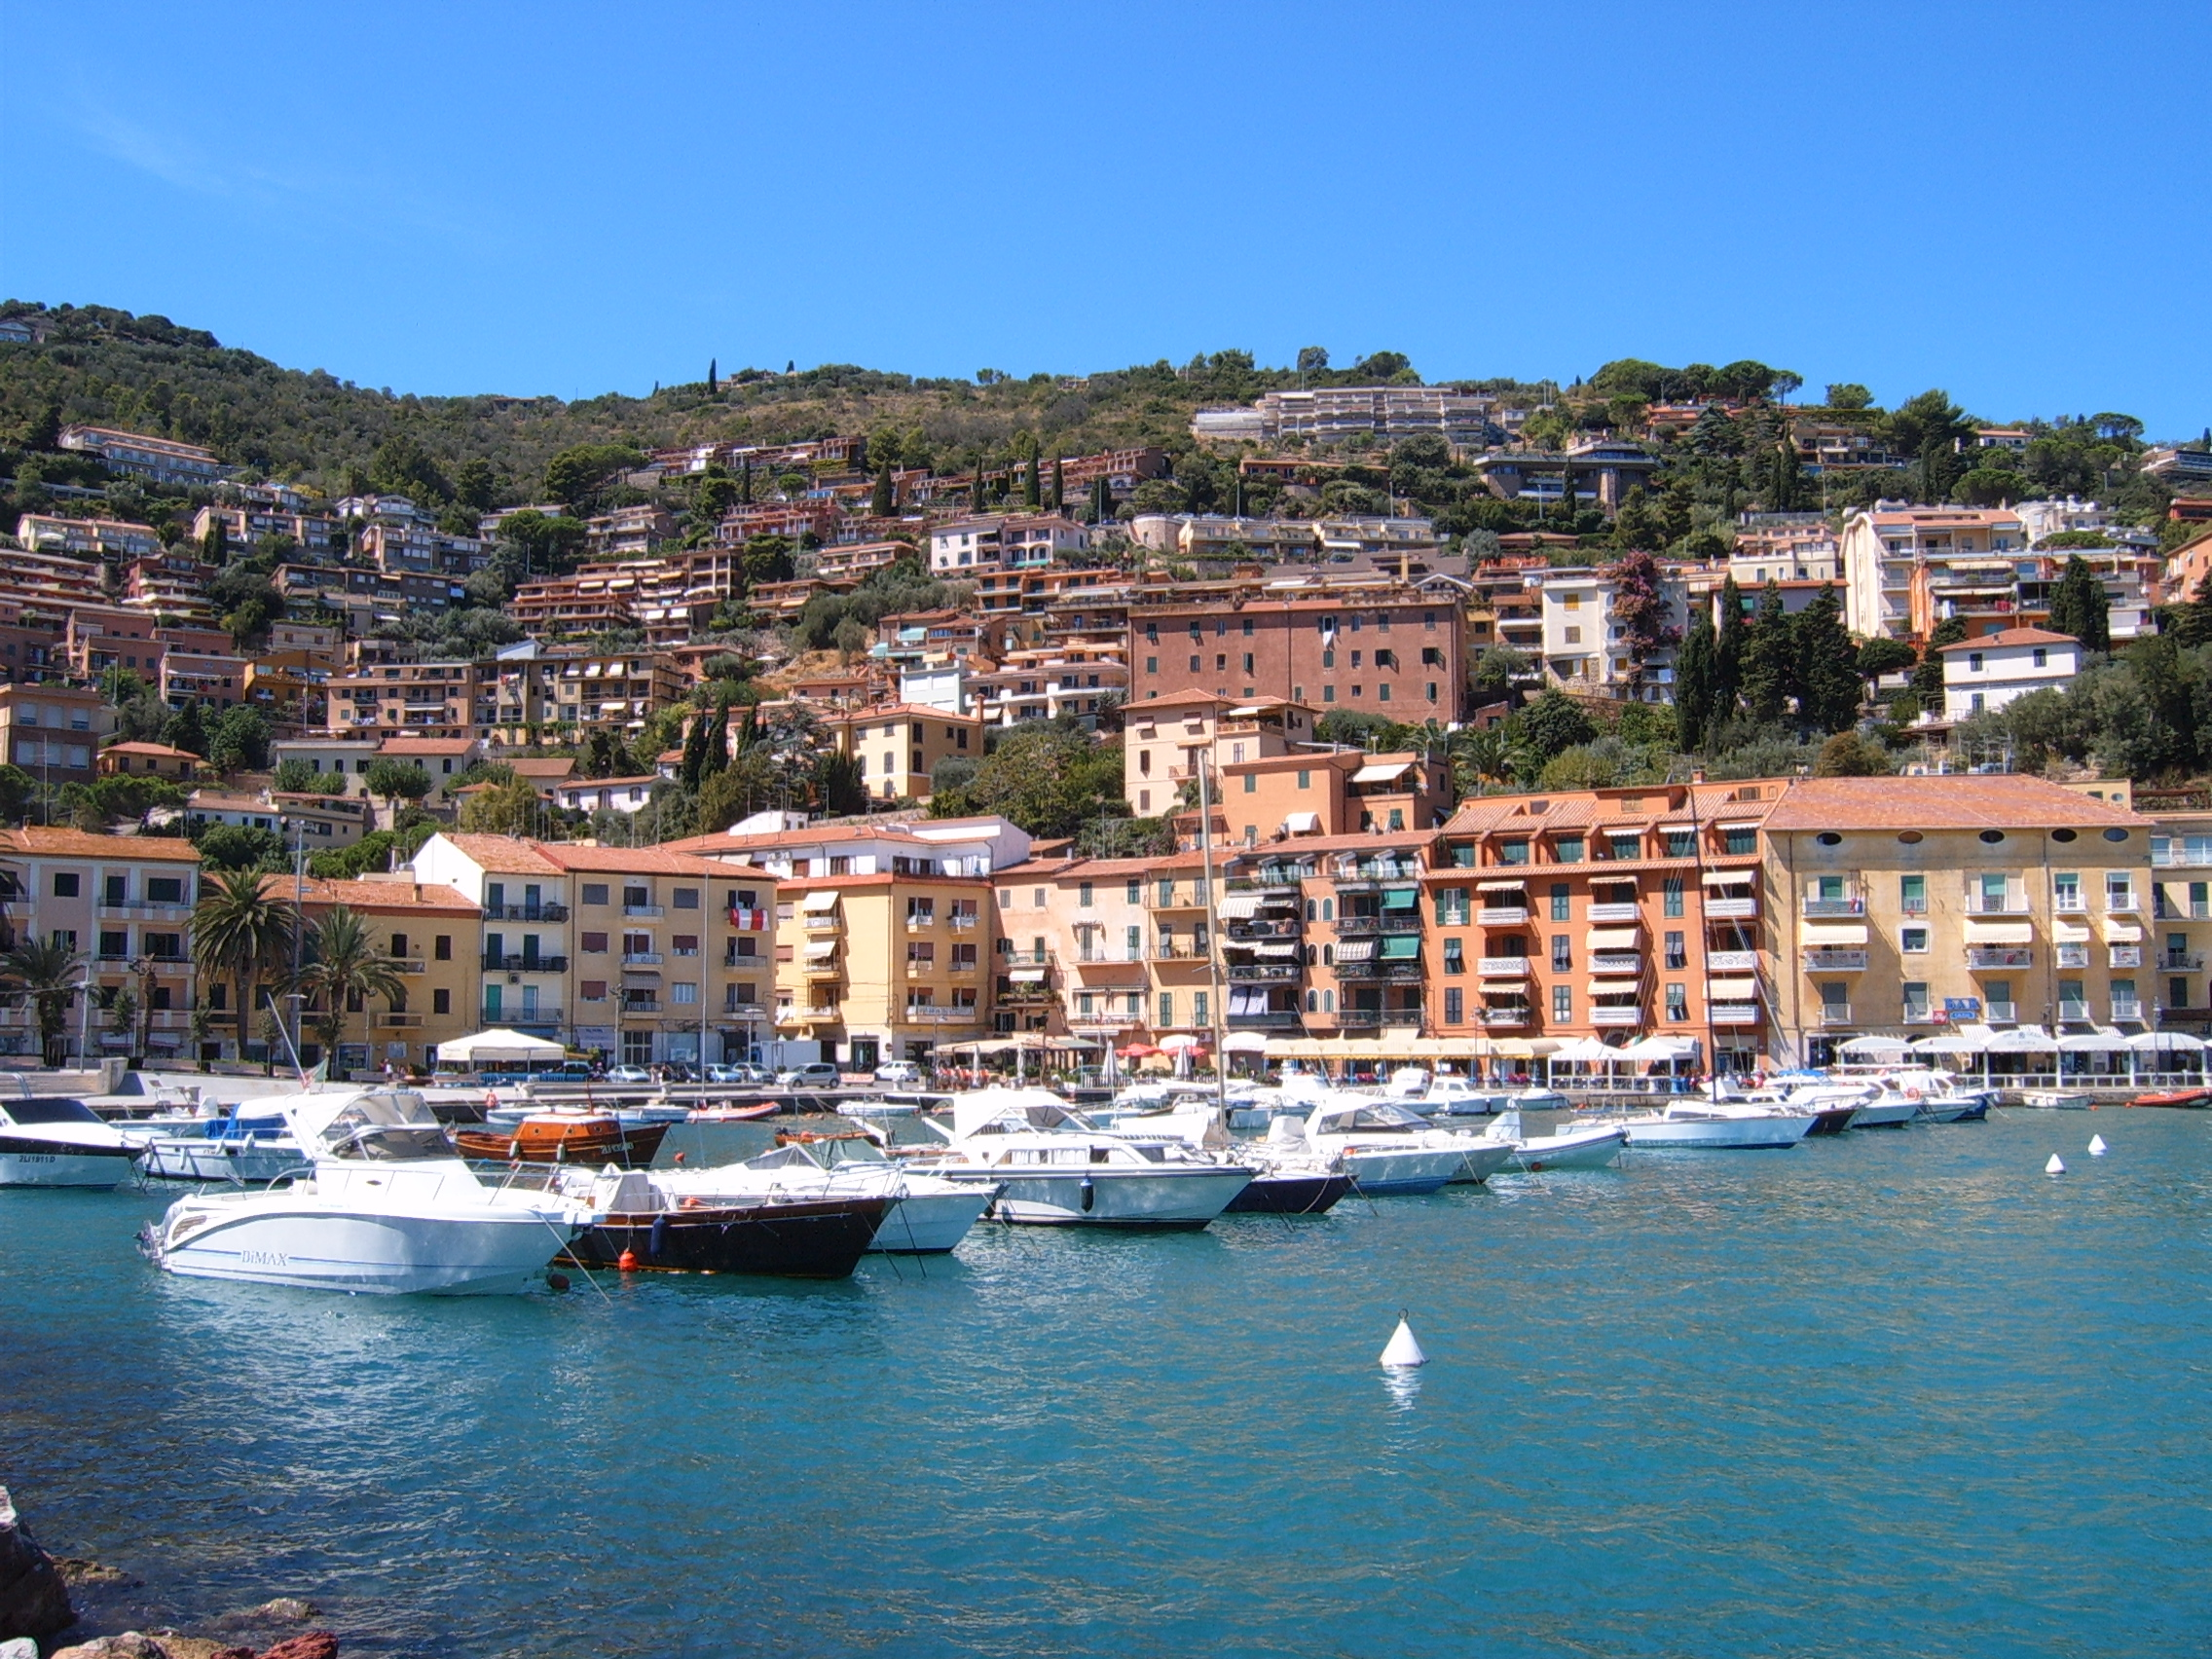 Porto Santo Stefano Italy  city photos gallery : Porto Santo Stefano 001 Wikipedia, the free encyclopedia